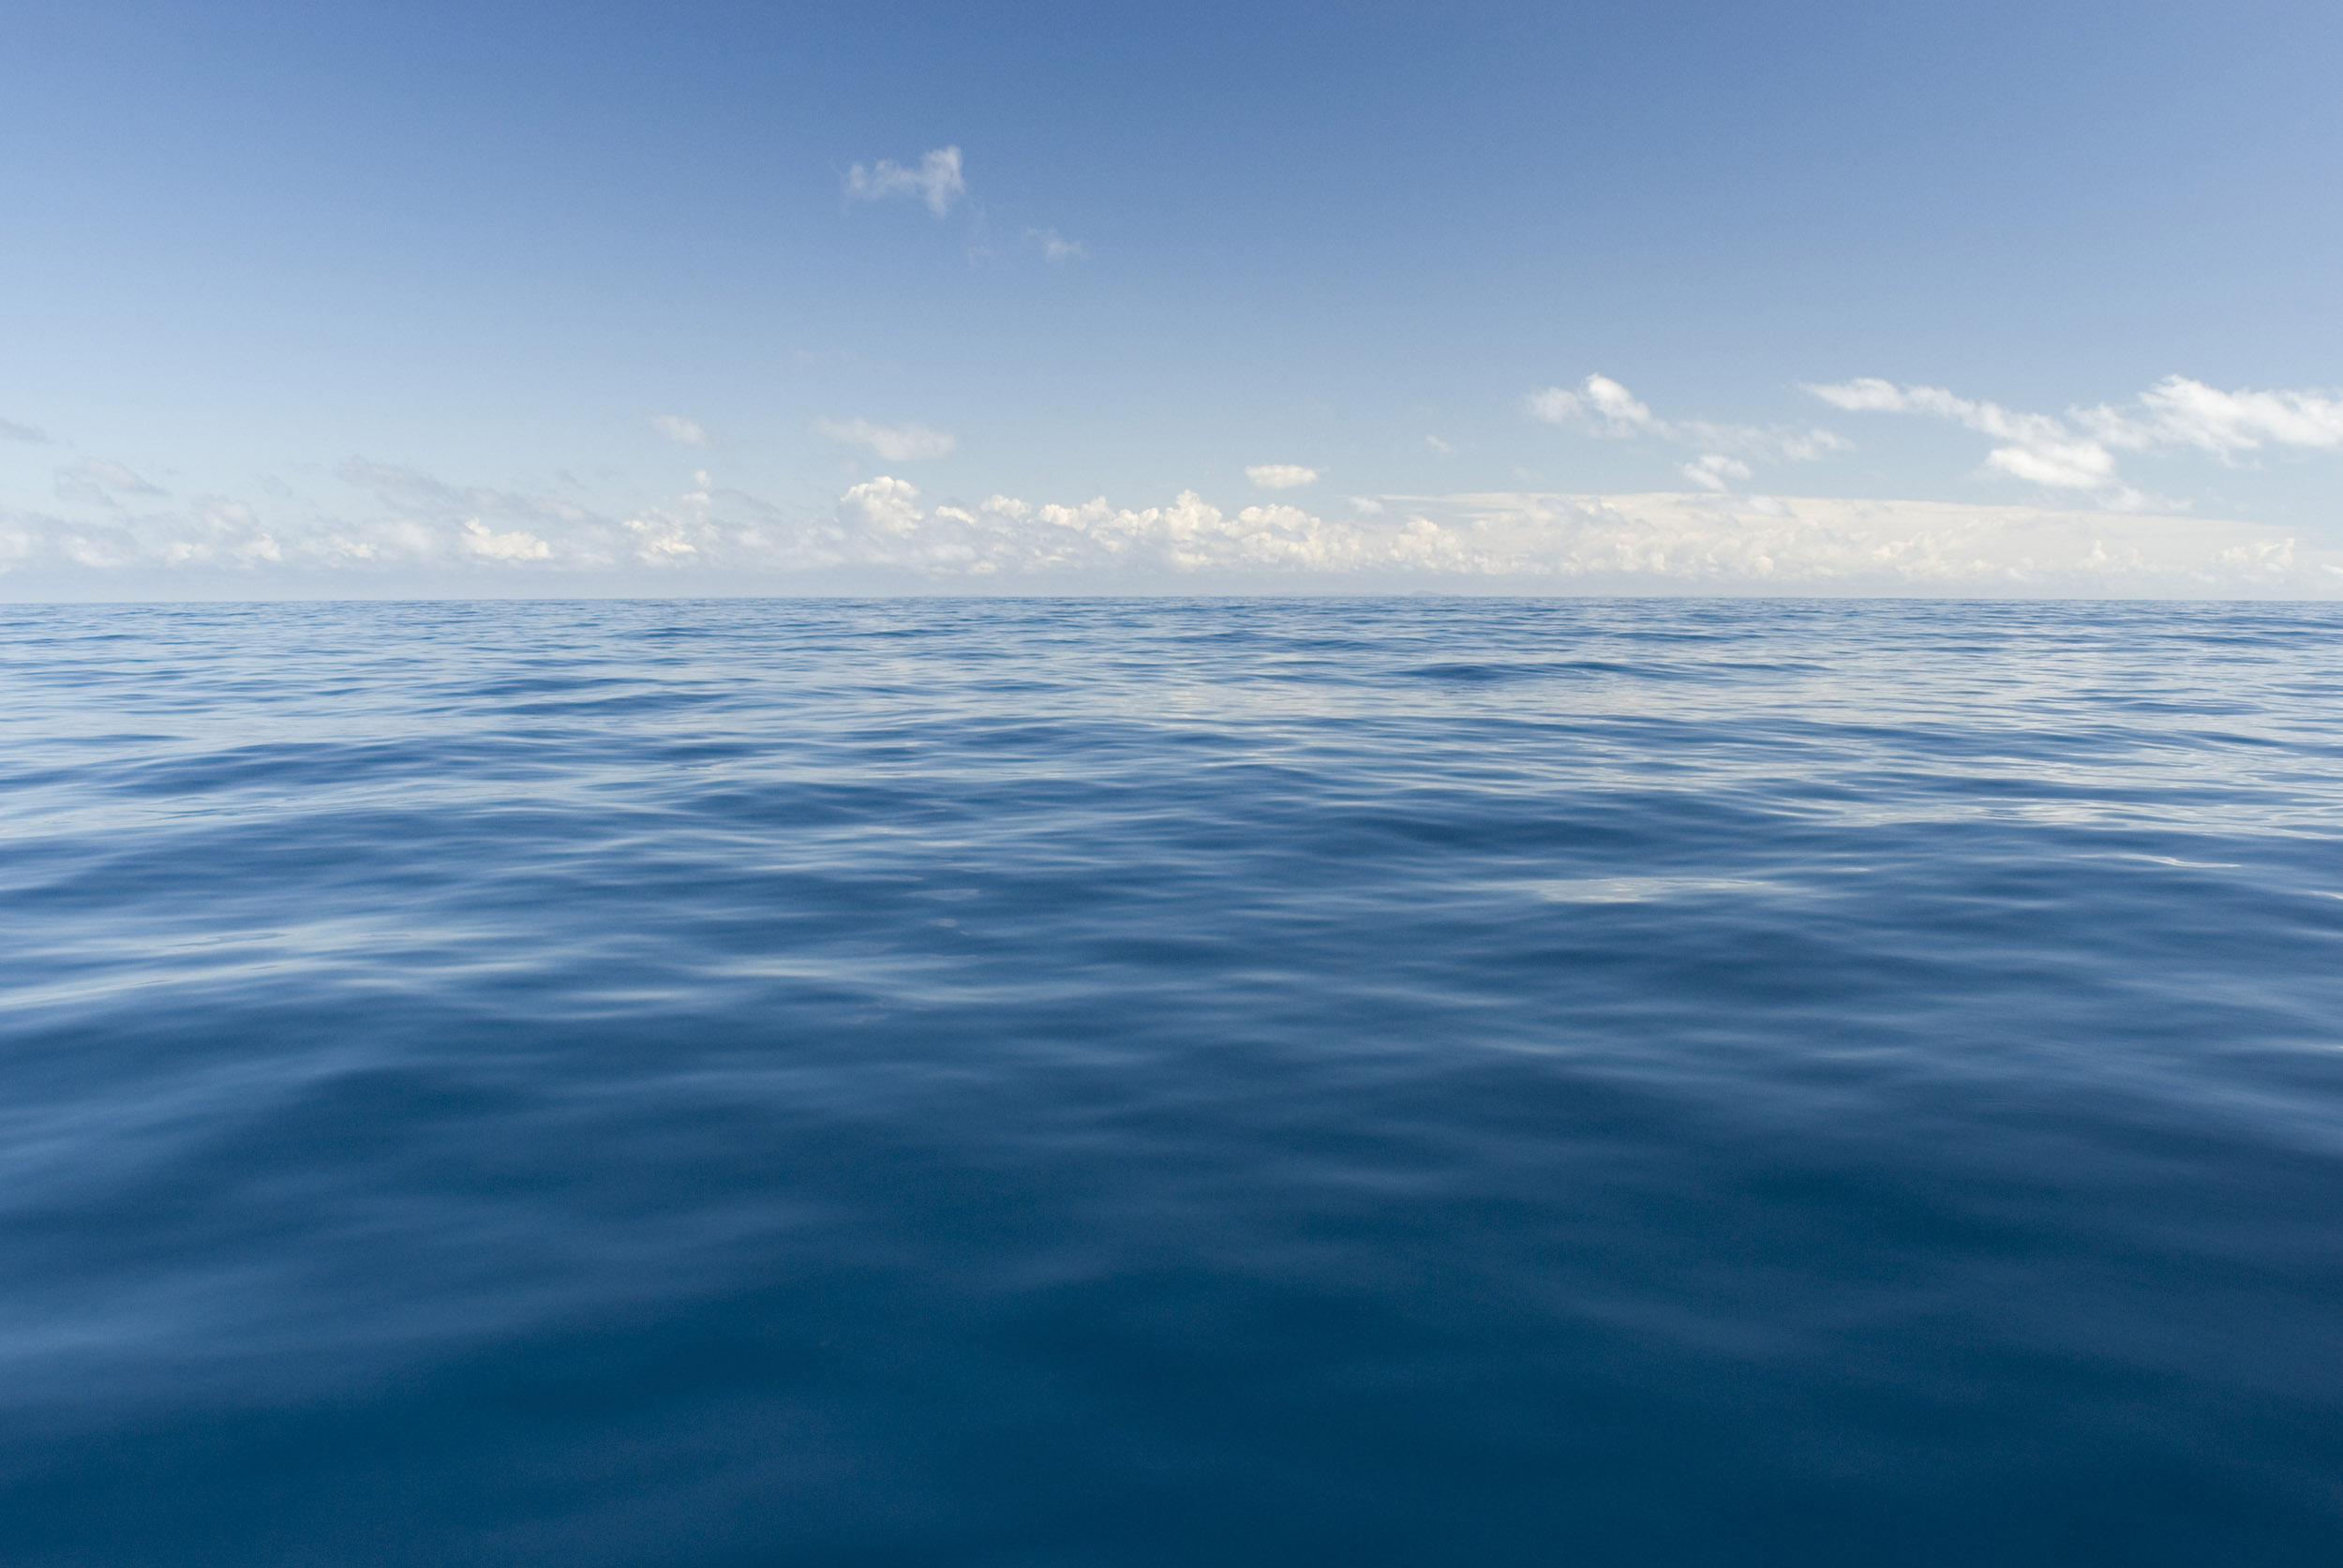 IPCC announce a report on ocean and climate change - Surfrider